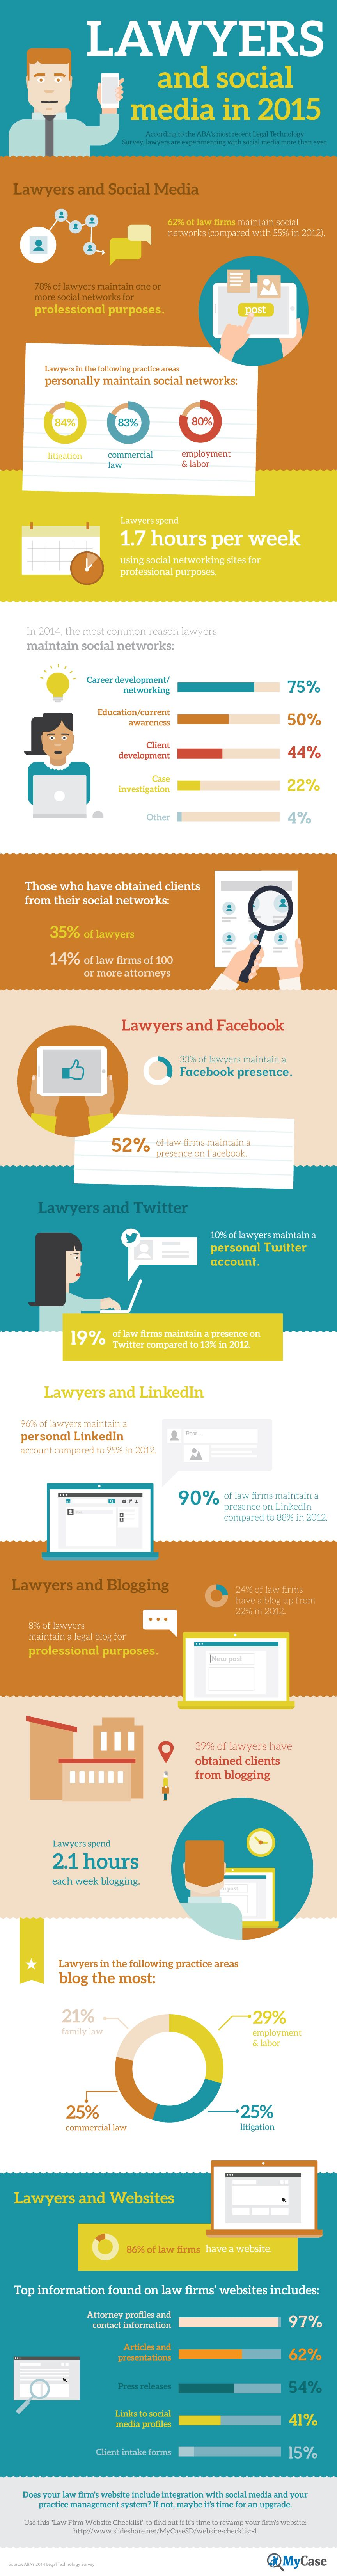 Lawyers and Social Media in 2015 #infographic